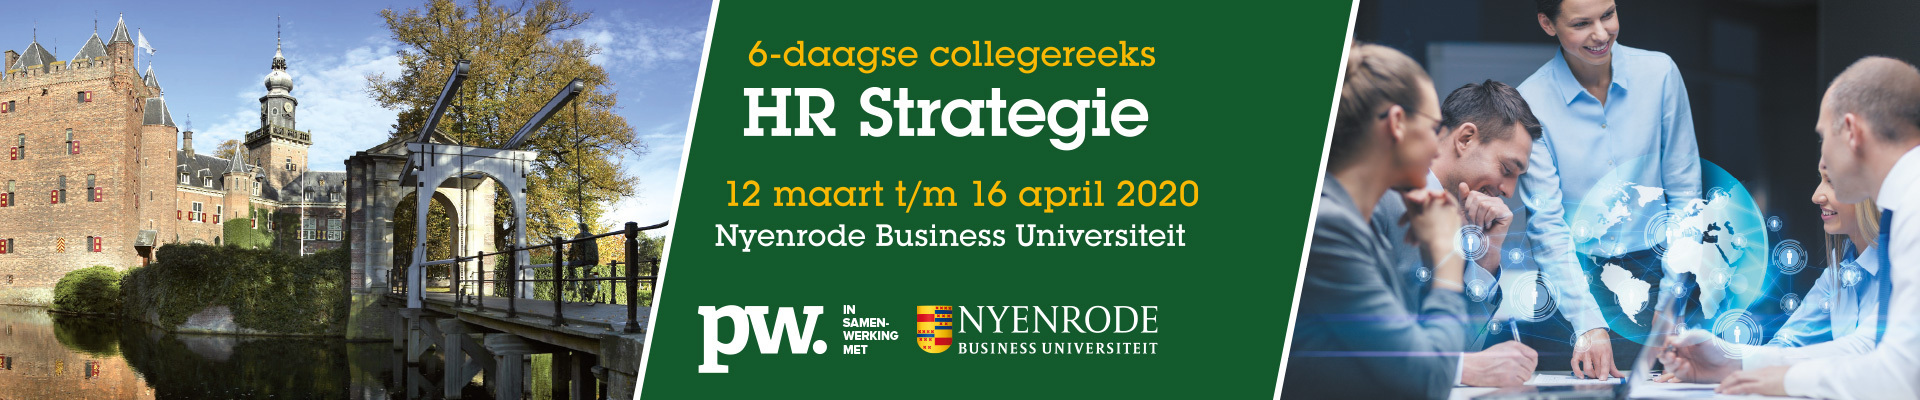 Nyenrode HR Strategie 2020 Voorjaar